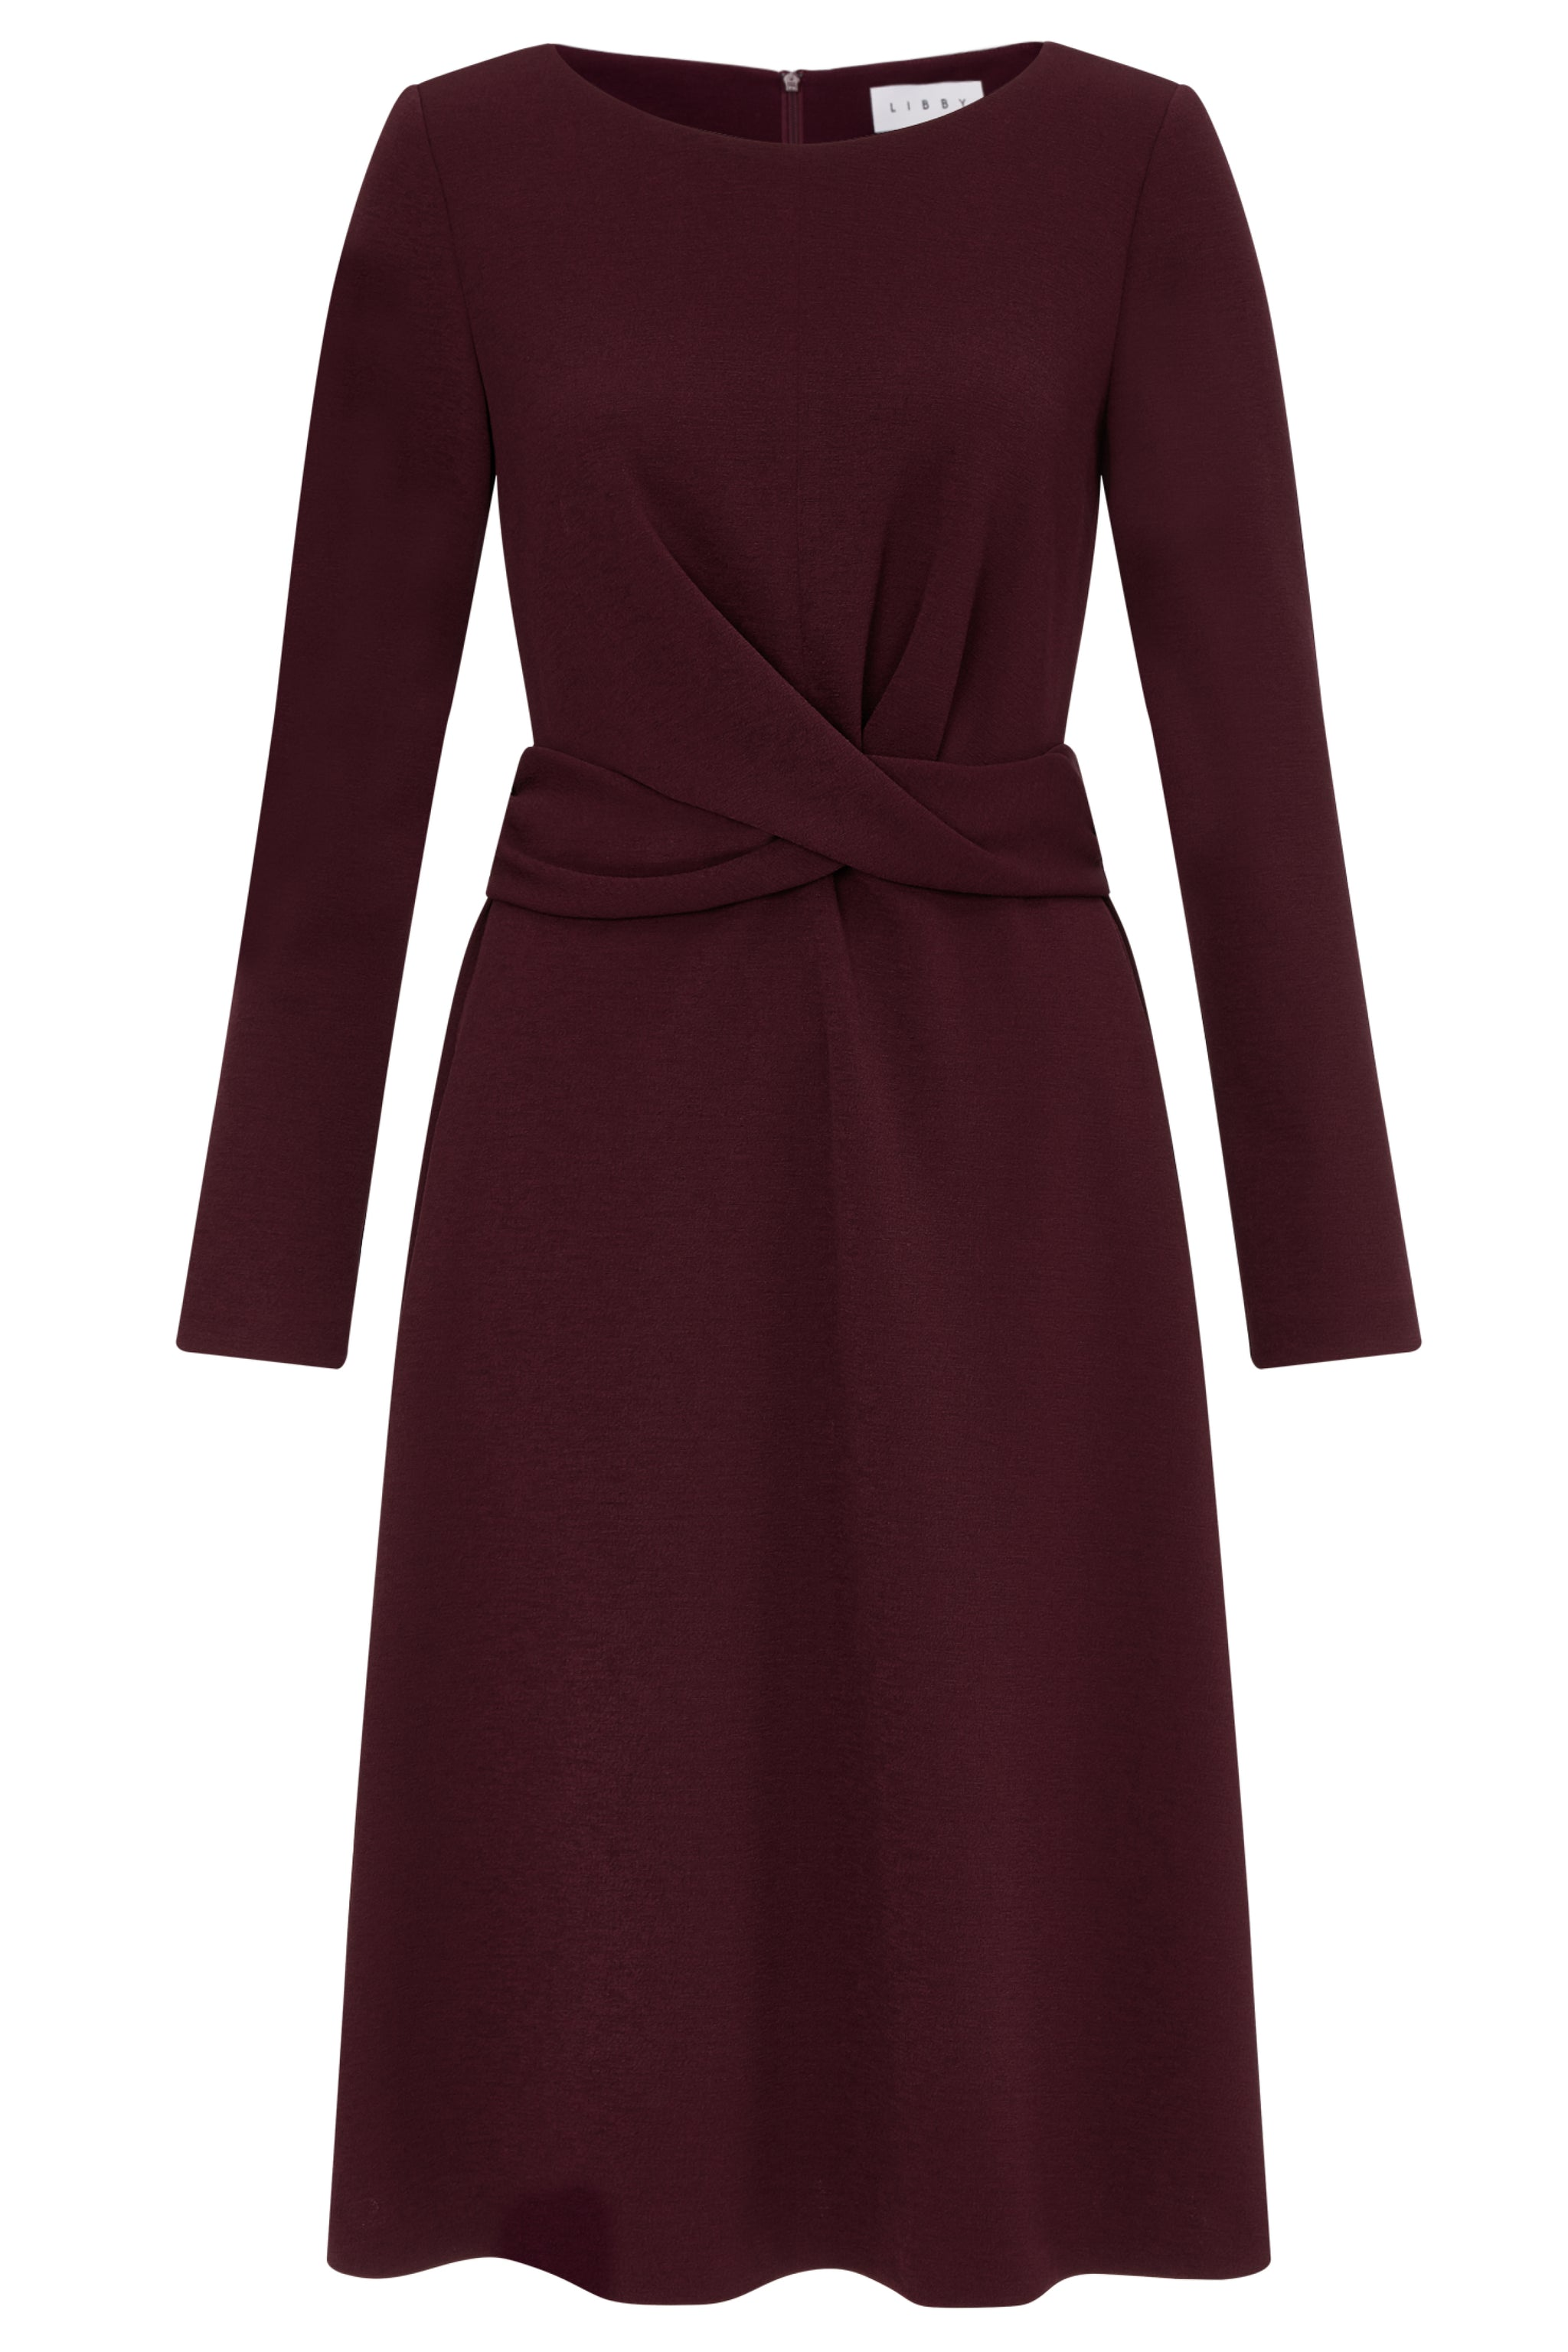 Charlton Damson Dress